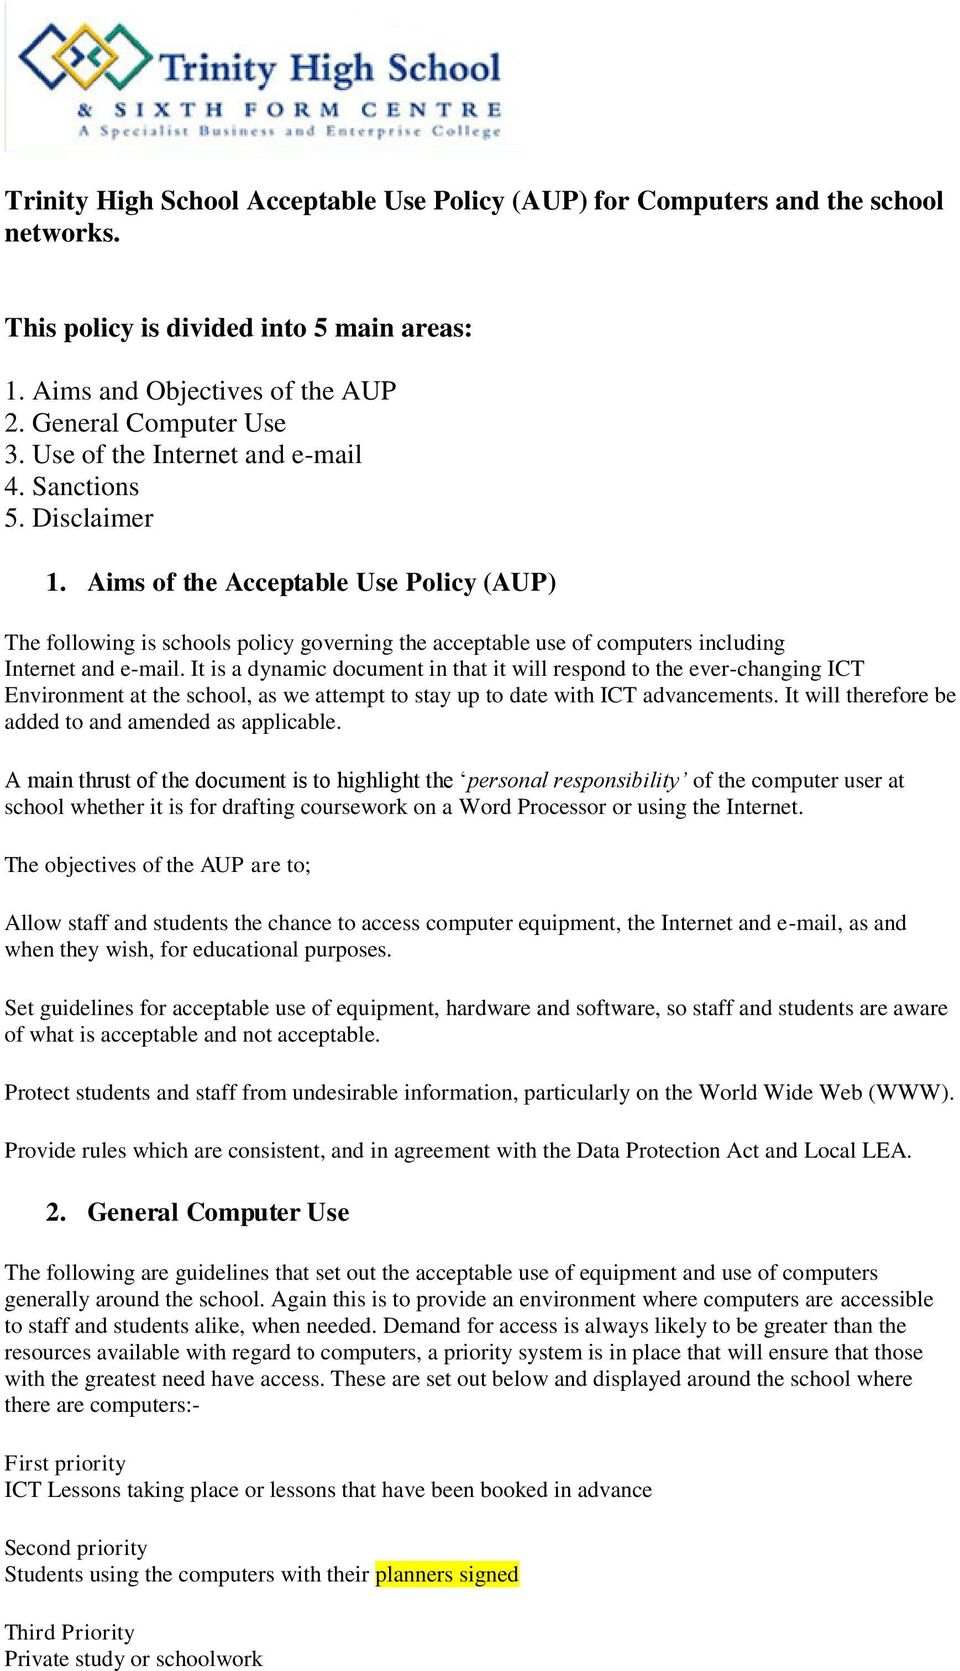 Aims of the Acceptable Use Policy (AUP) The following is schools policy governing the acceptable use of computers including Internet and e-mail.